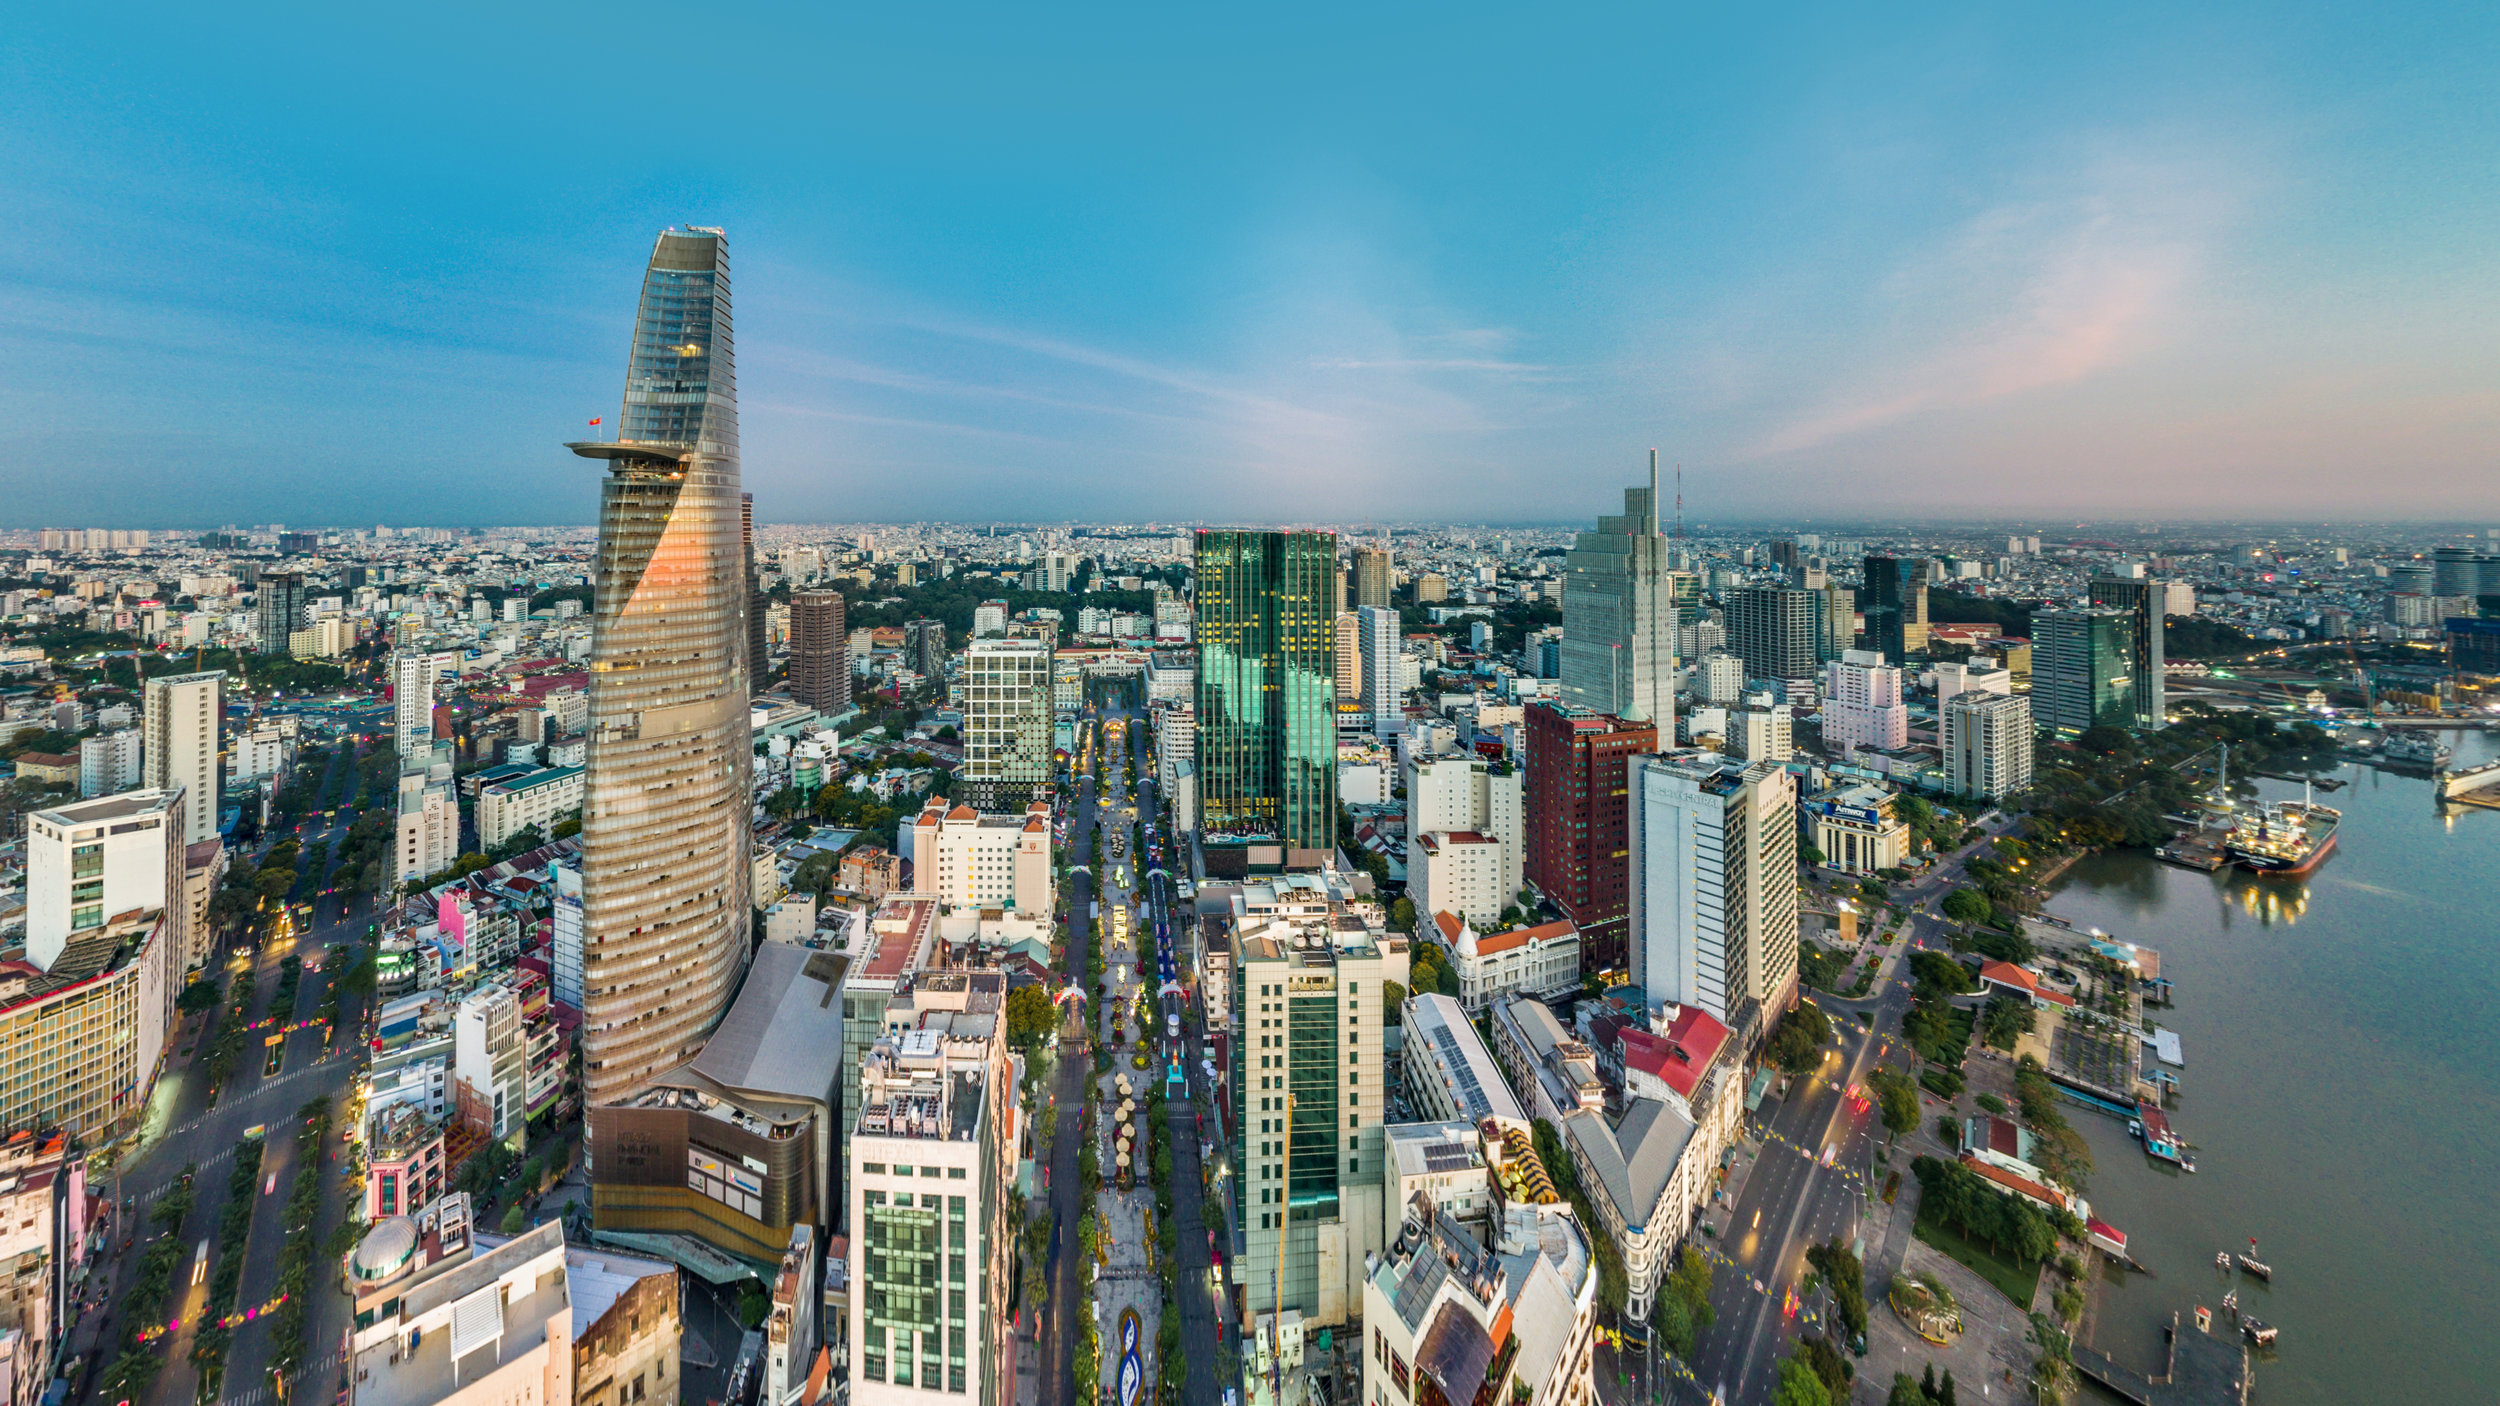 Saigon, one of South east Asia's fastest growing cities